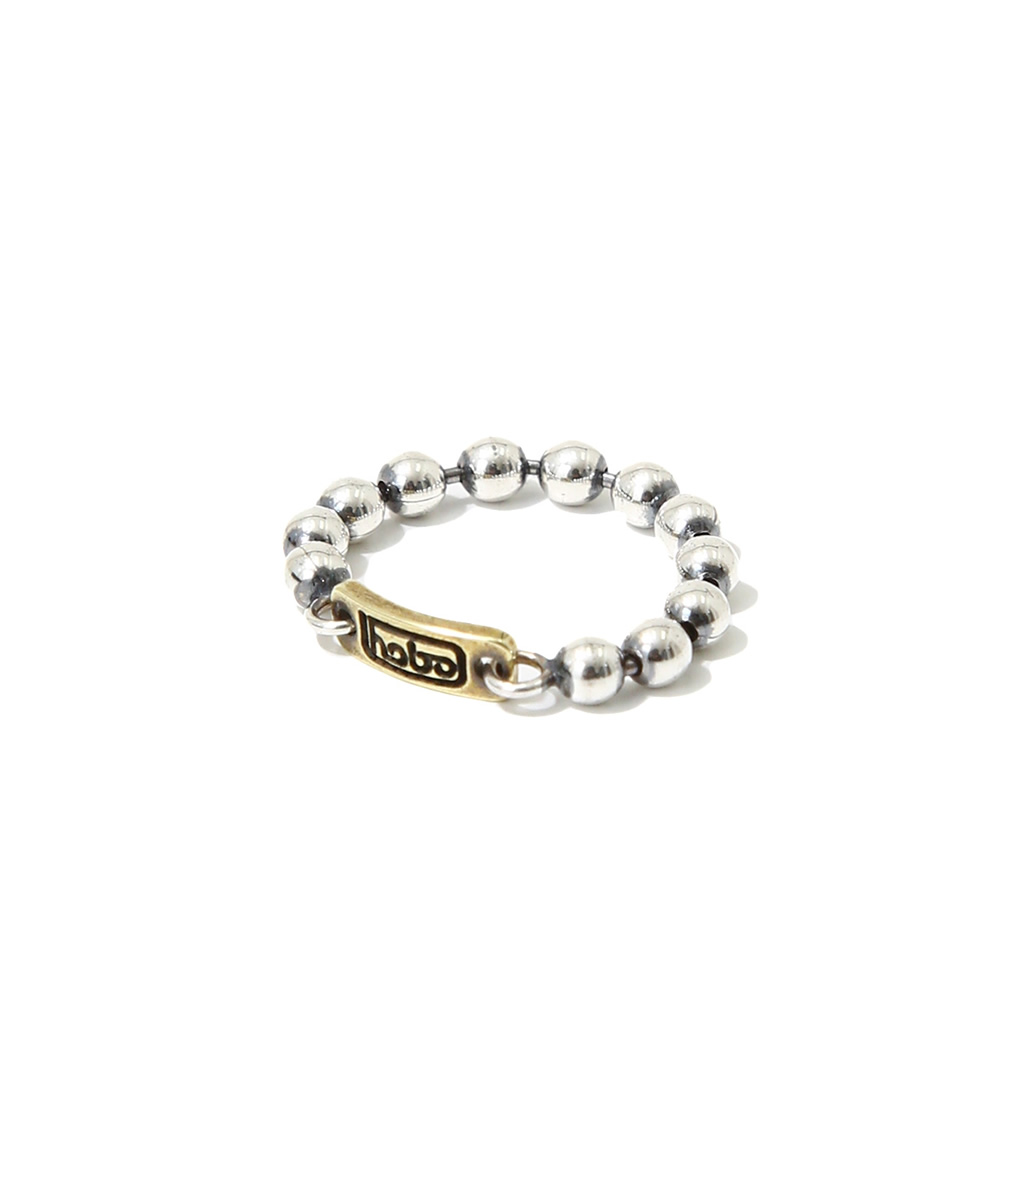 hobo / ホーボー : 925 Silver Ball Chain Ring with Brass : シルバー チェイン リング : HB-A2910【NOA】